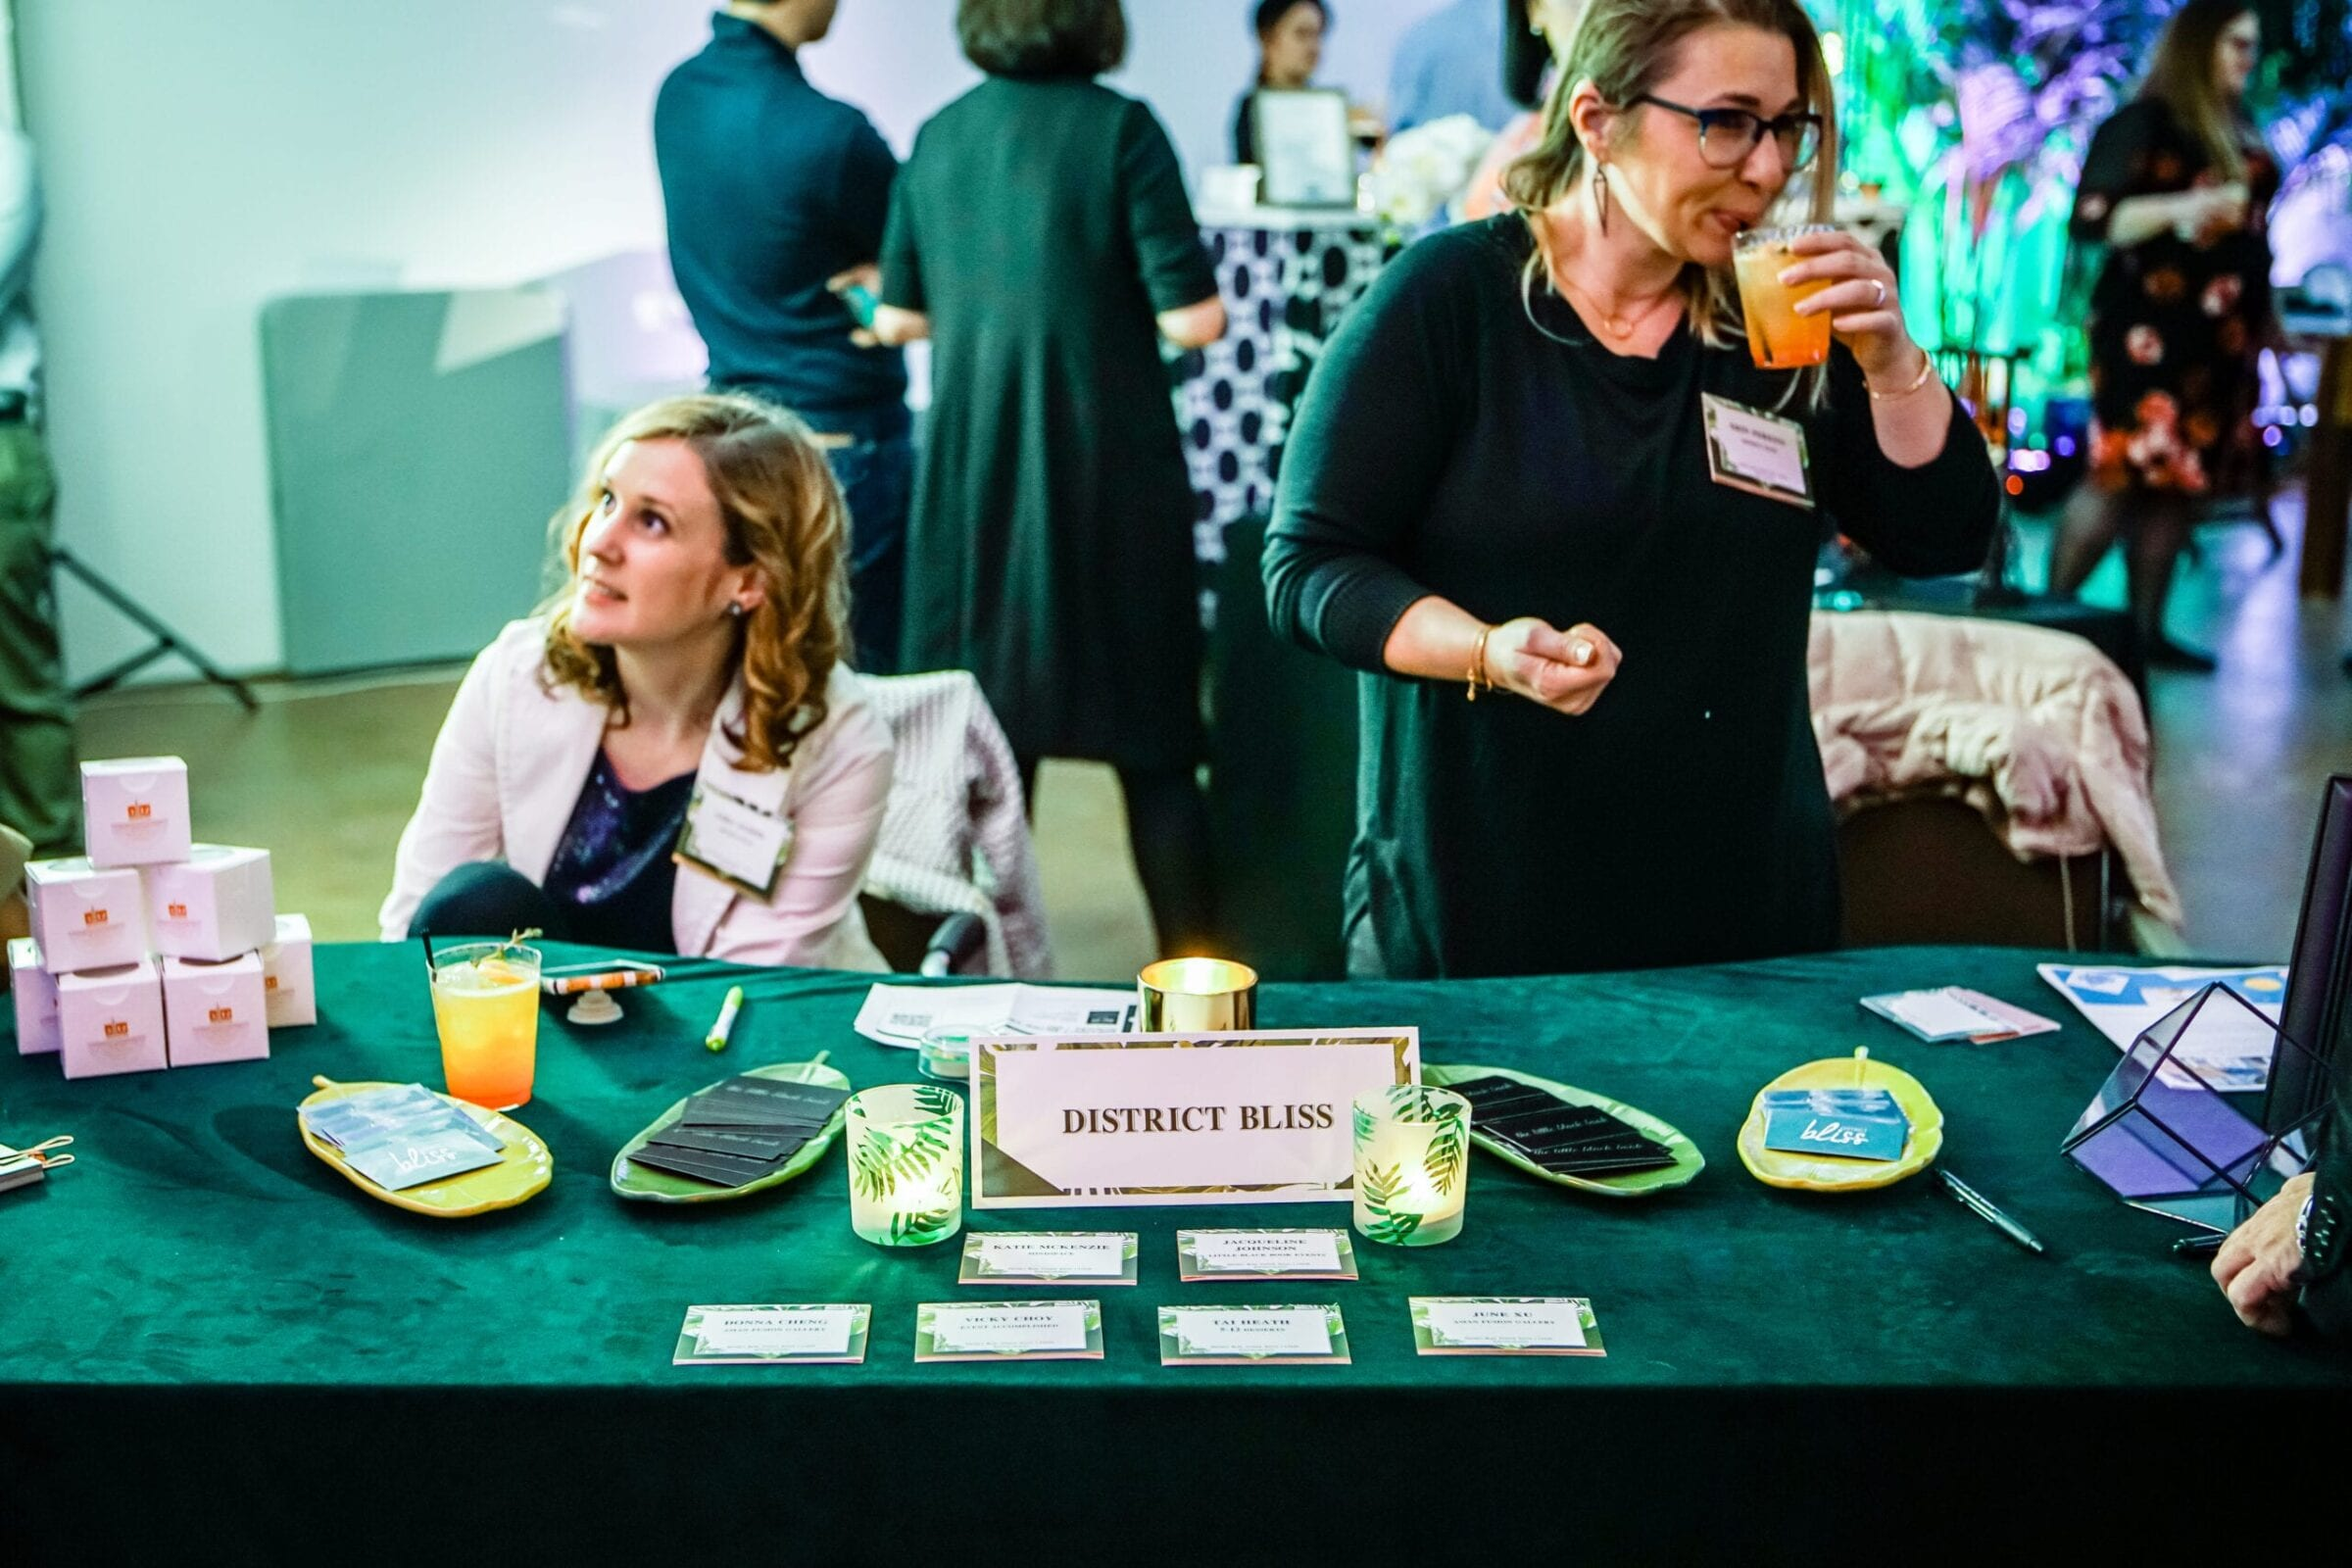 The District Bliss team supports small businesses, creates a community of quality connections for referrals and clients, brings people together, and makes everyone feel welcome at their Vendor Socials - Networking Events